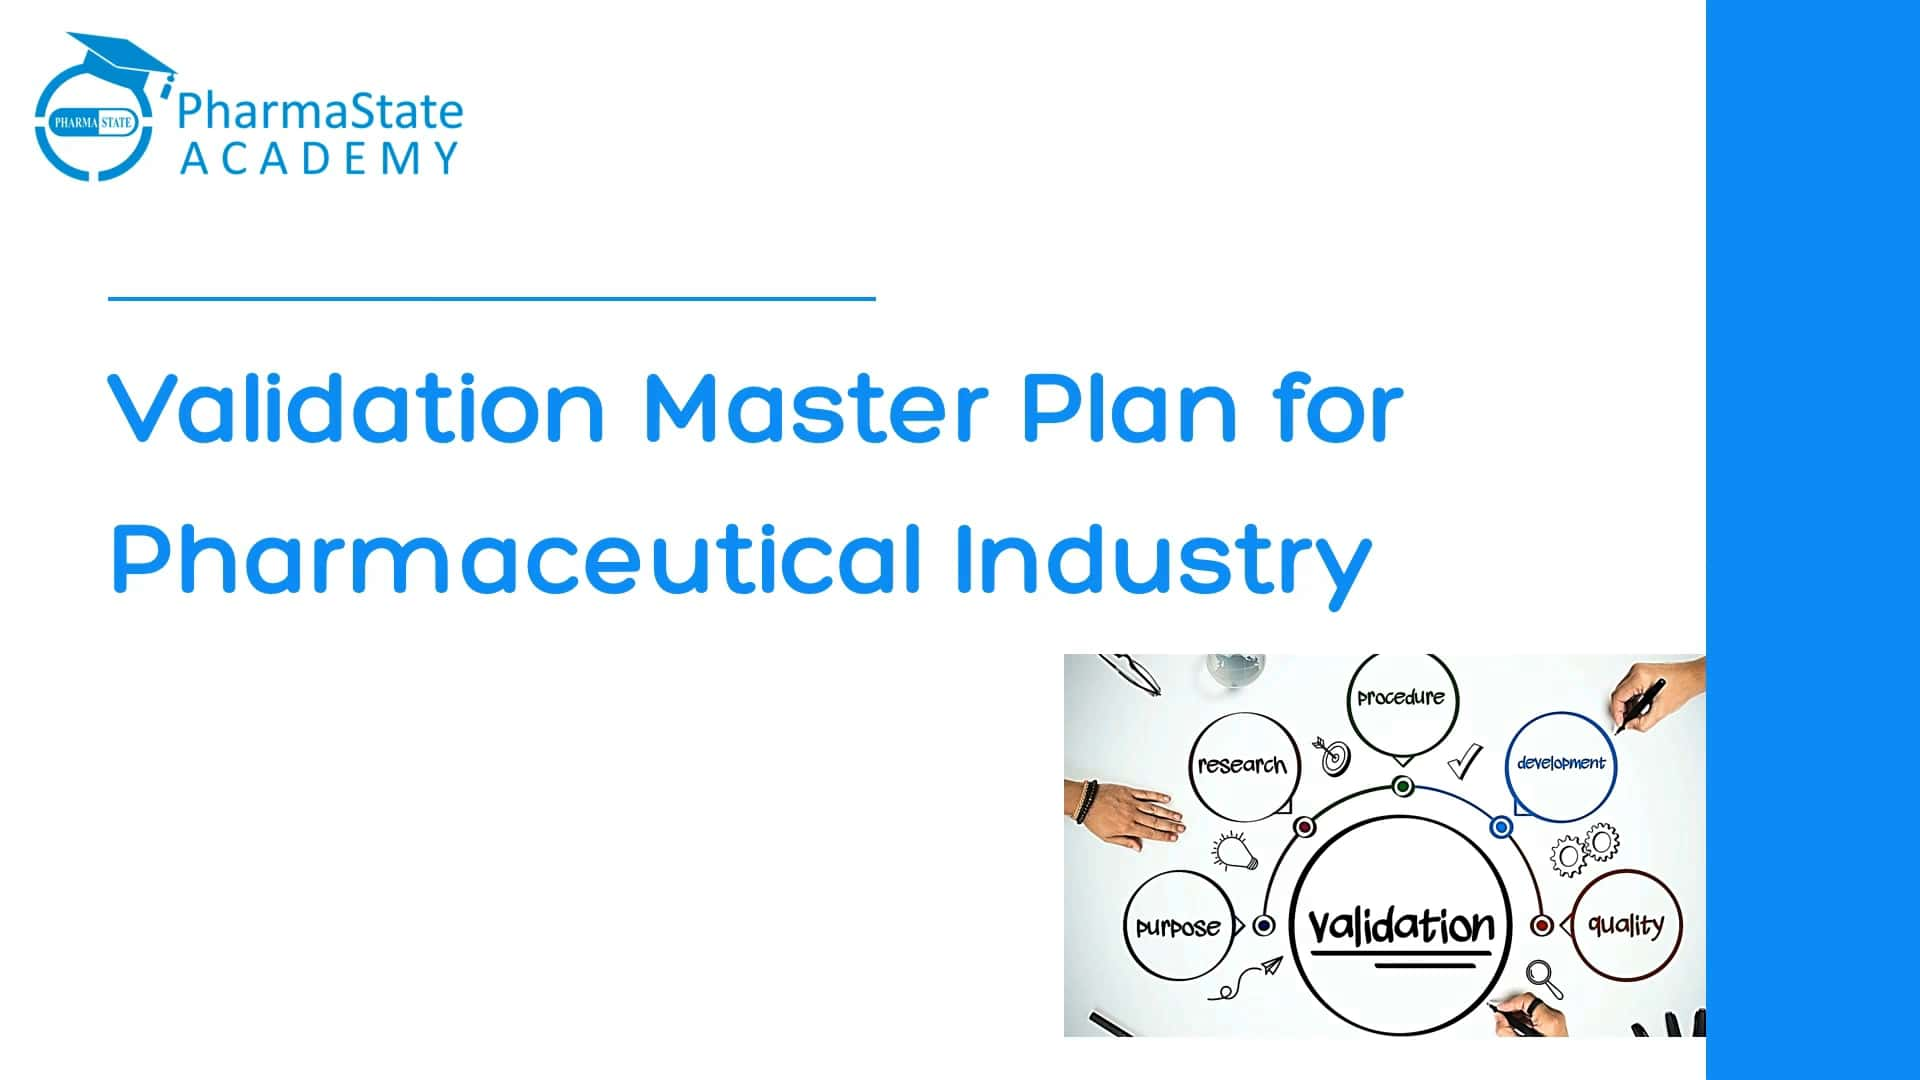 Validation Master Plan for Pharmaceutical Industry